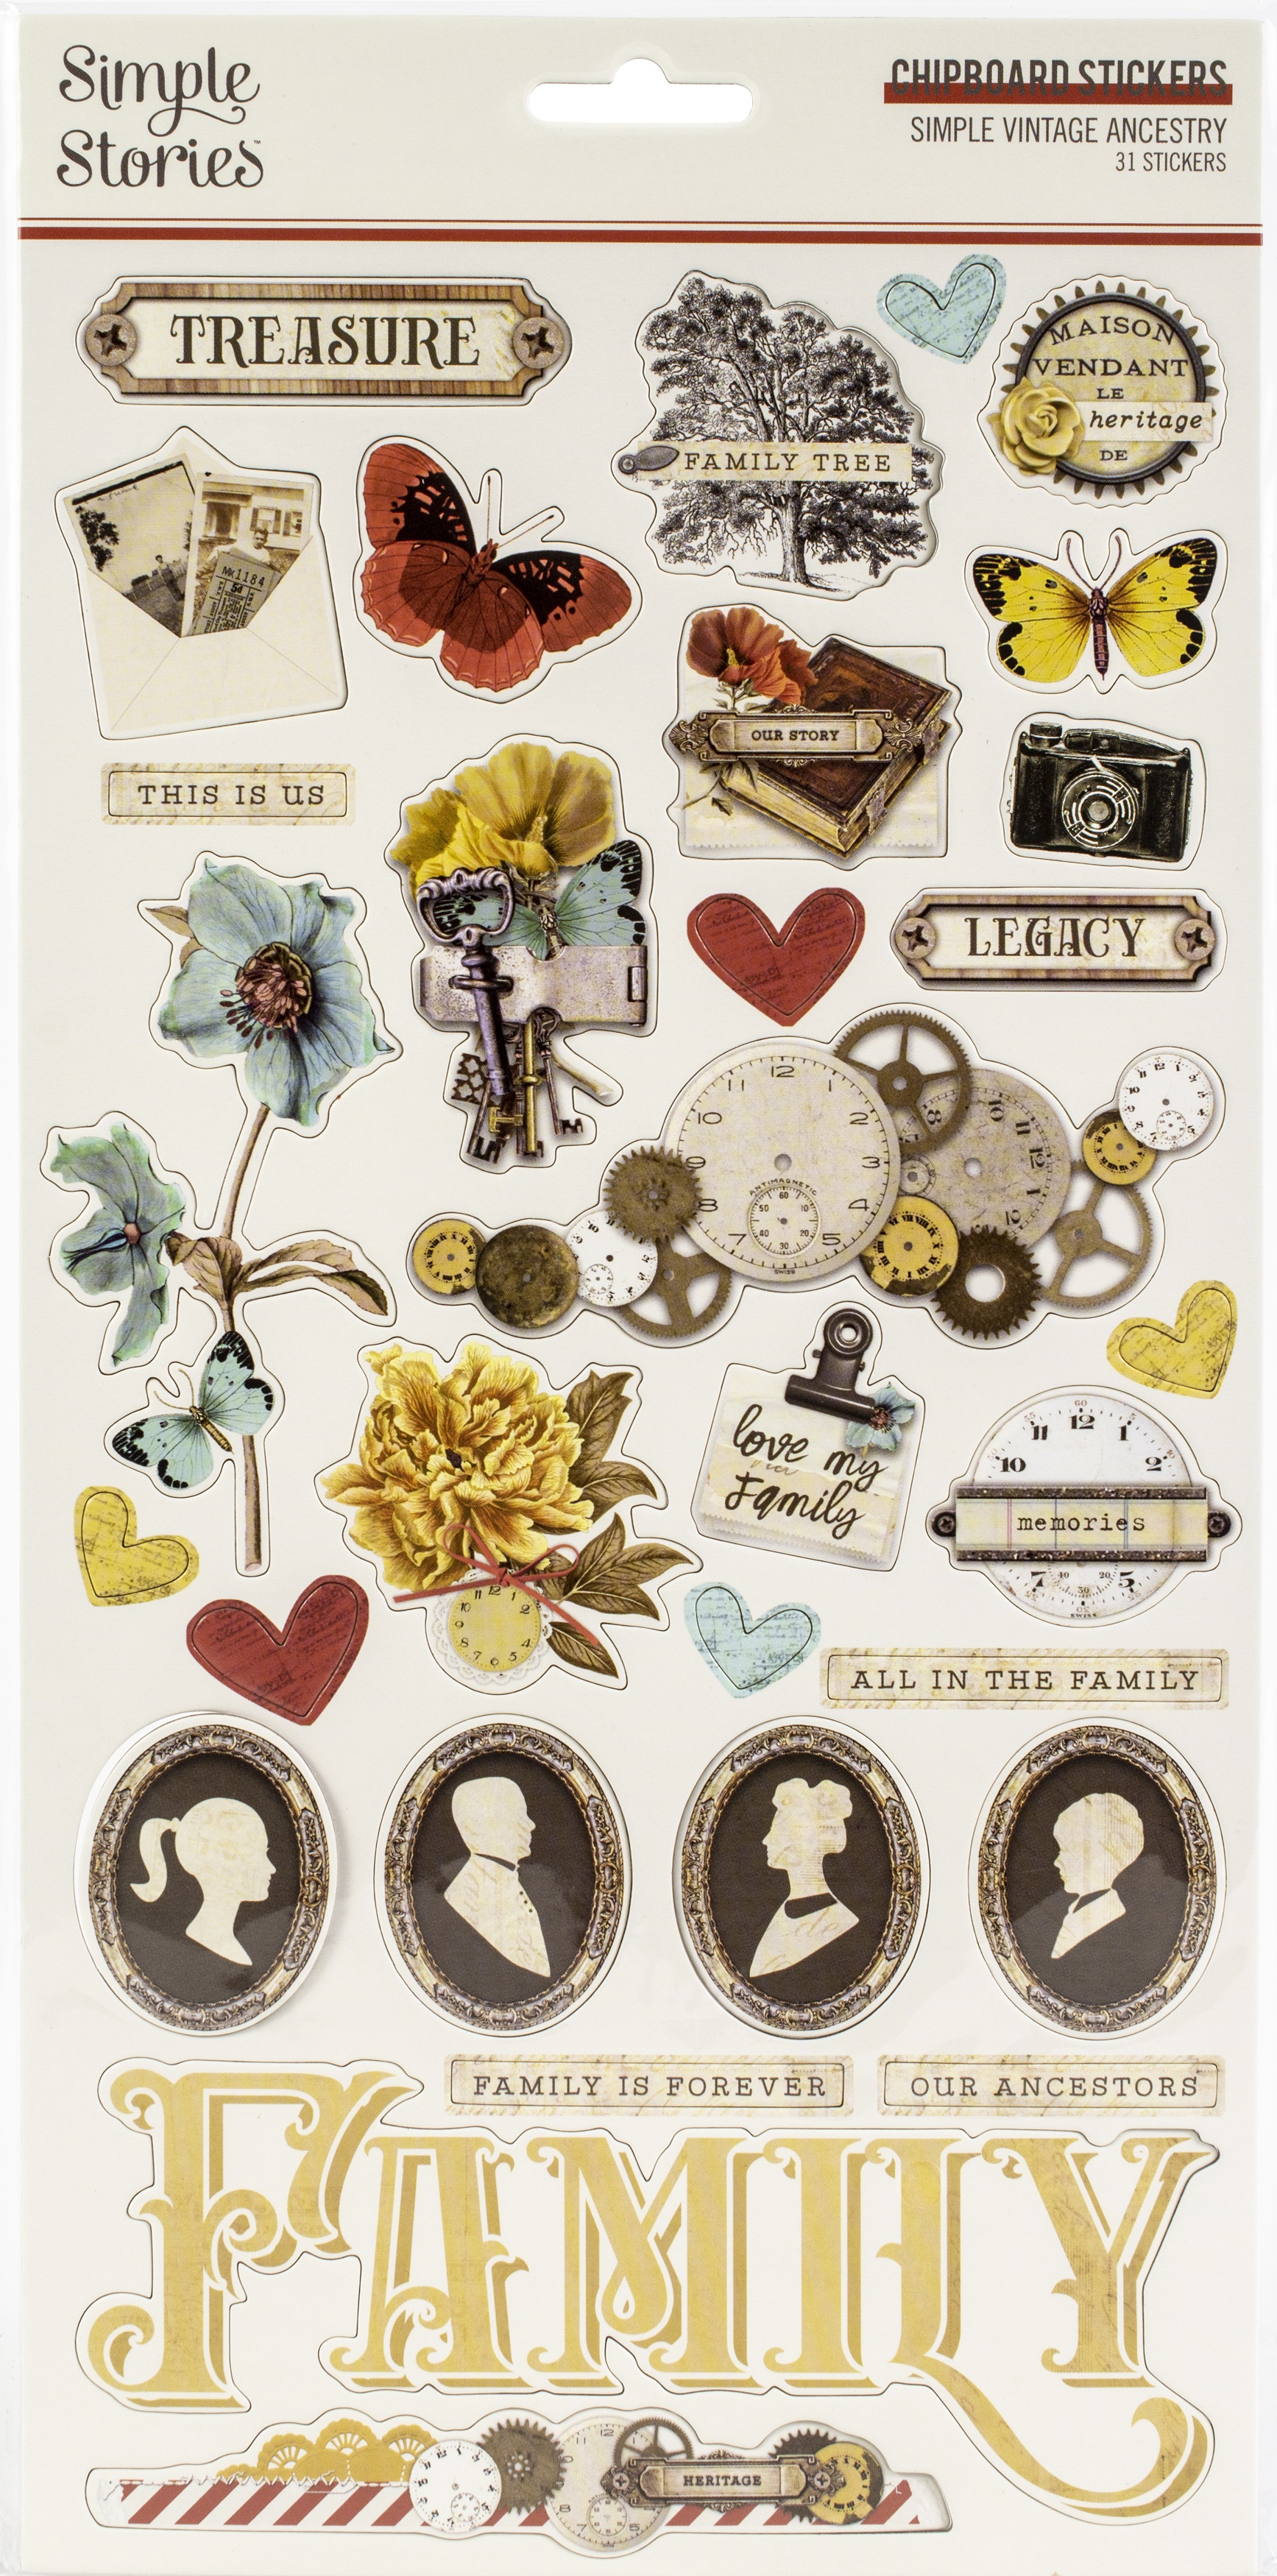 Simple Vintage Ancestry Chipboard Stickers 6X12-